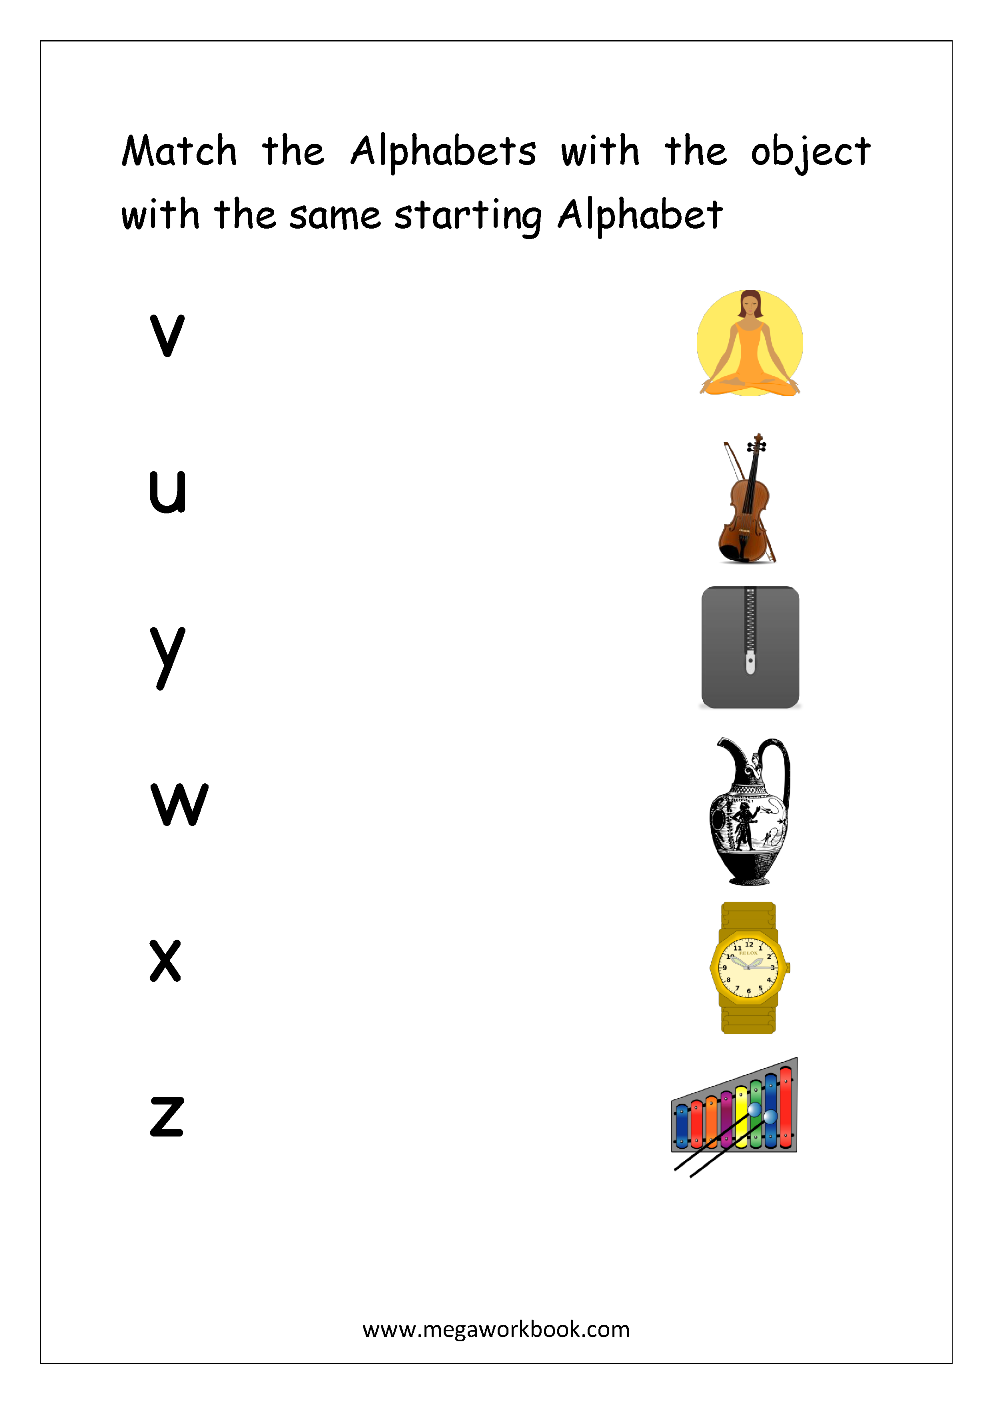 Free English Worksheets - Alphabet Matching - Megaworkbook pertaining to Alphabet Matching Worksheets Pdf